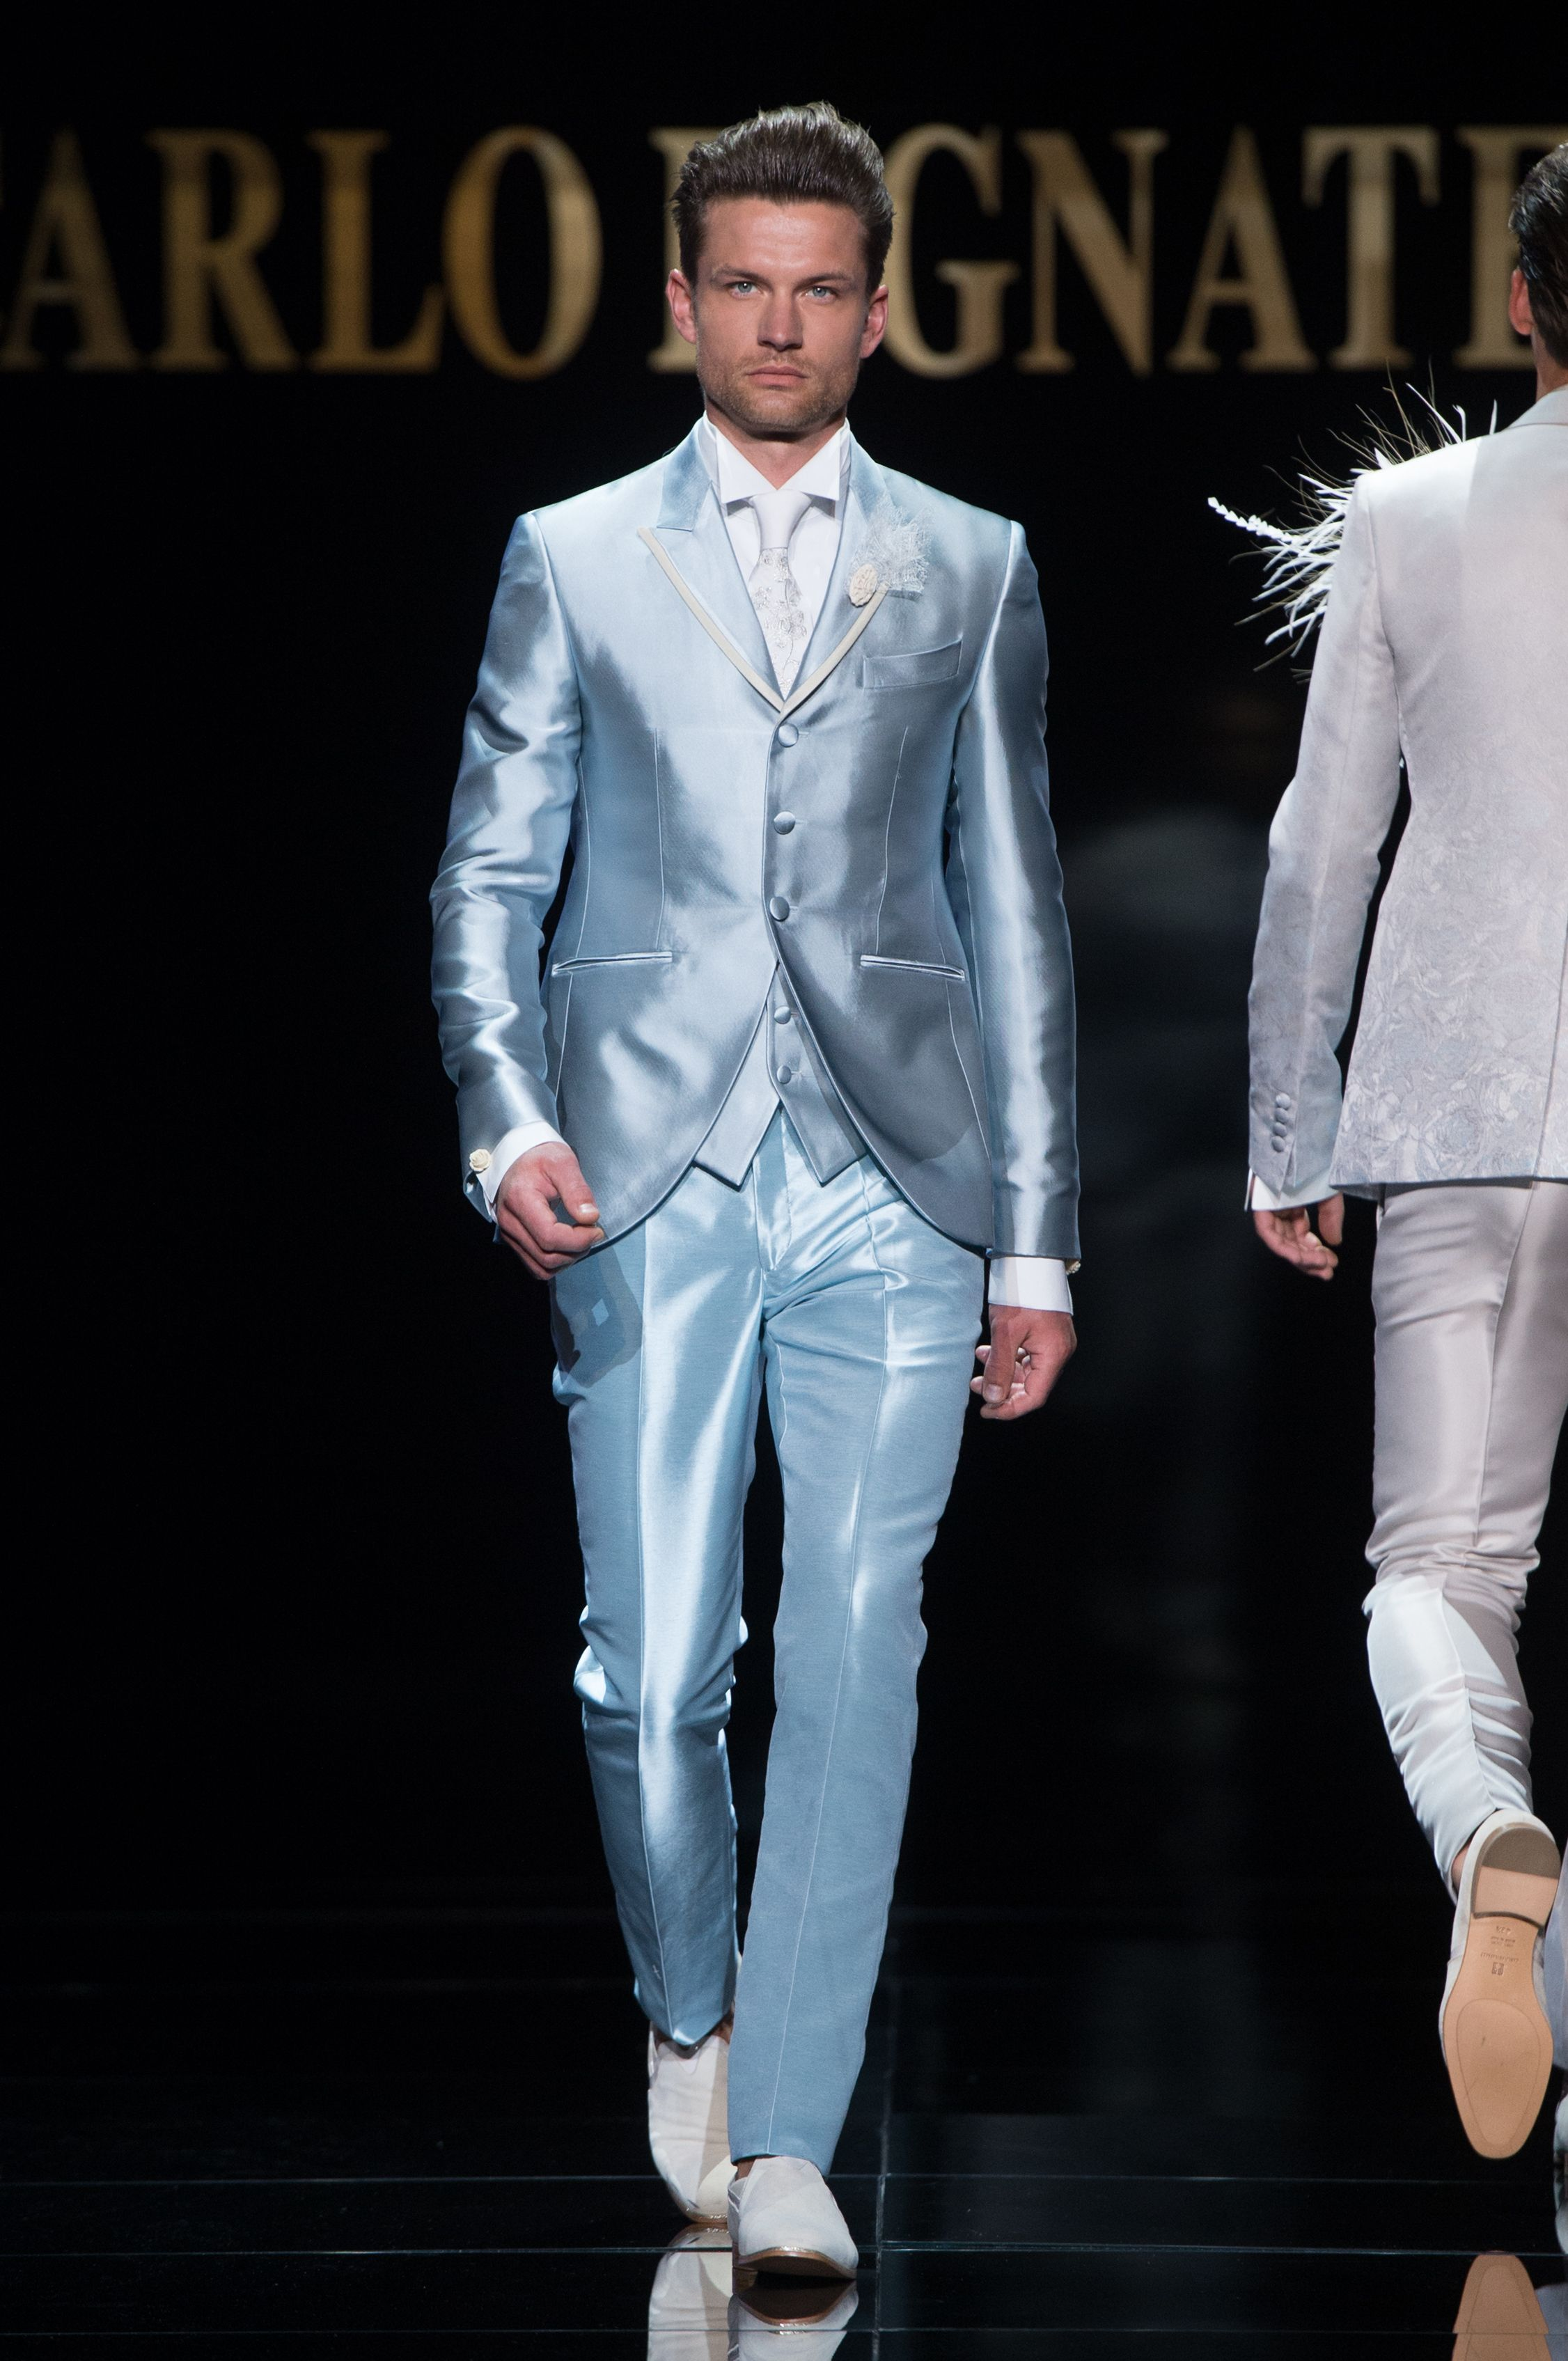 Carlo Pignatelli Fashion Show Wedding Fashionshow Groom | My ...